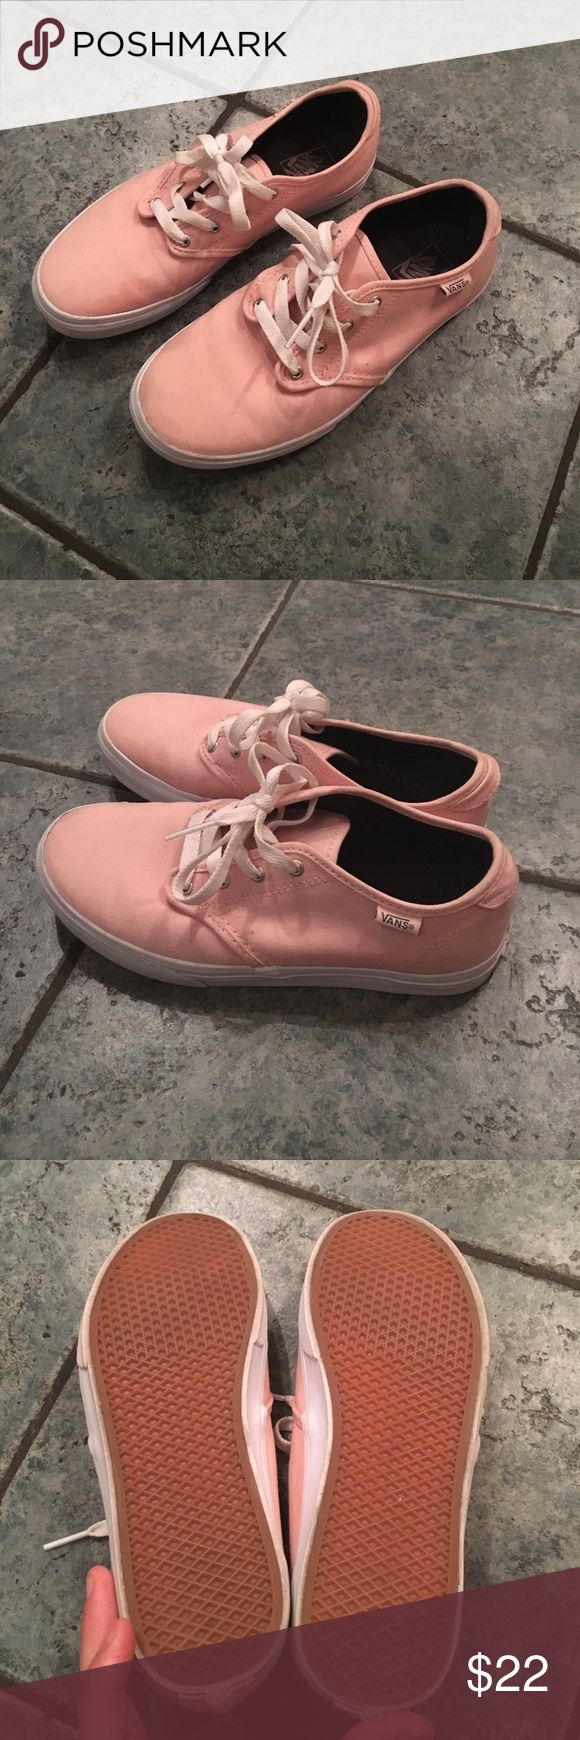 Coral vans. Like new! Bright and fun coral colored vans. Missy size 5.5 which will fit women's size 7. Vans Shoes Sneakers